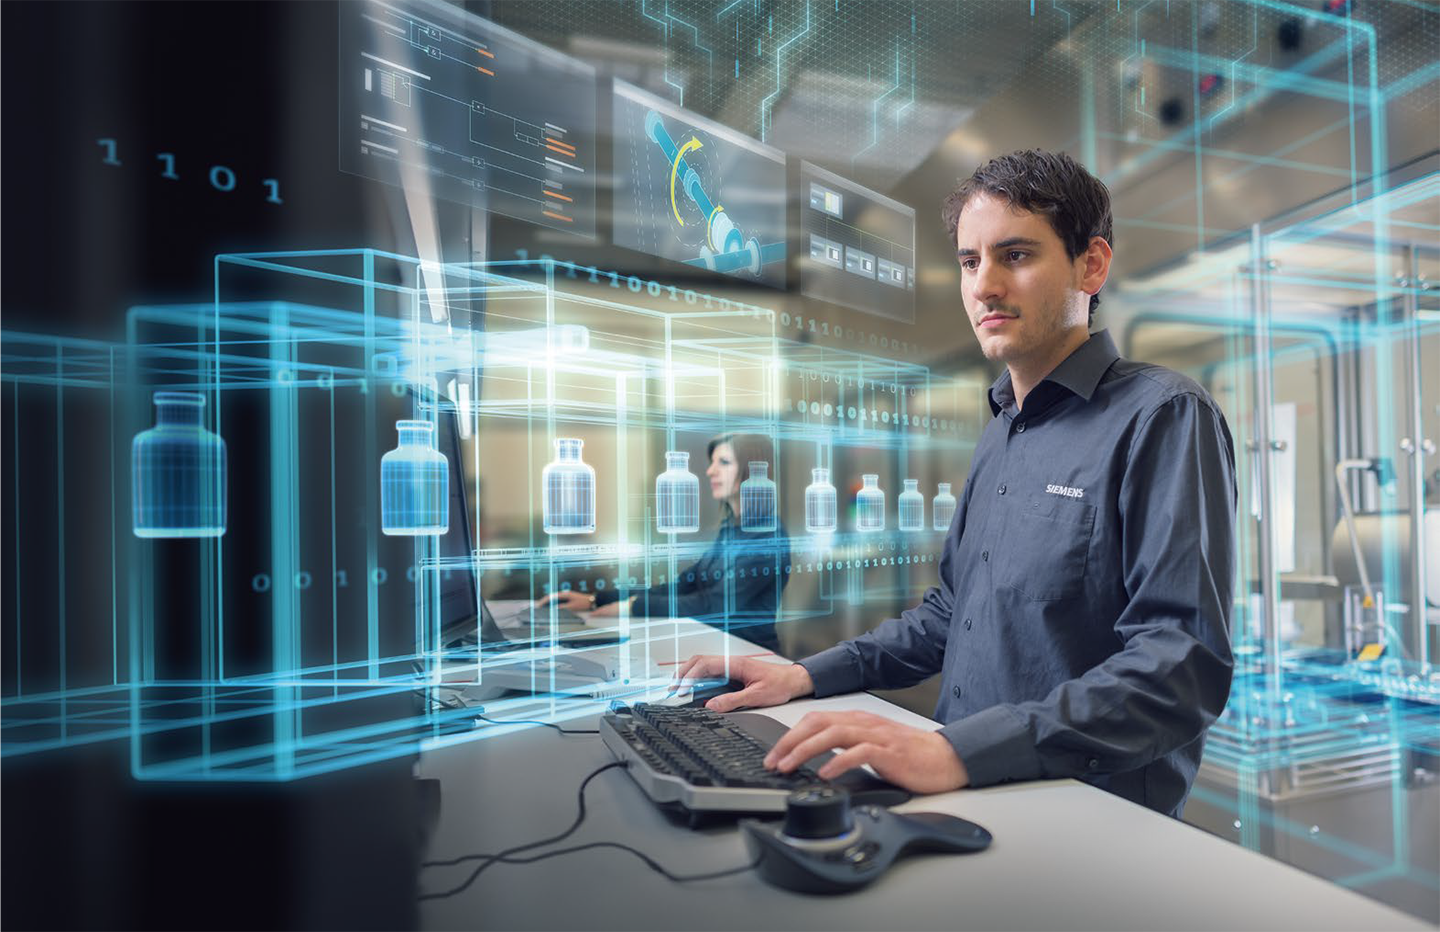 siemens virtual commissioning digital twin software